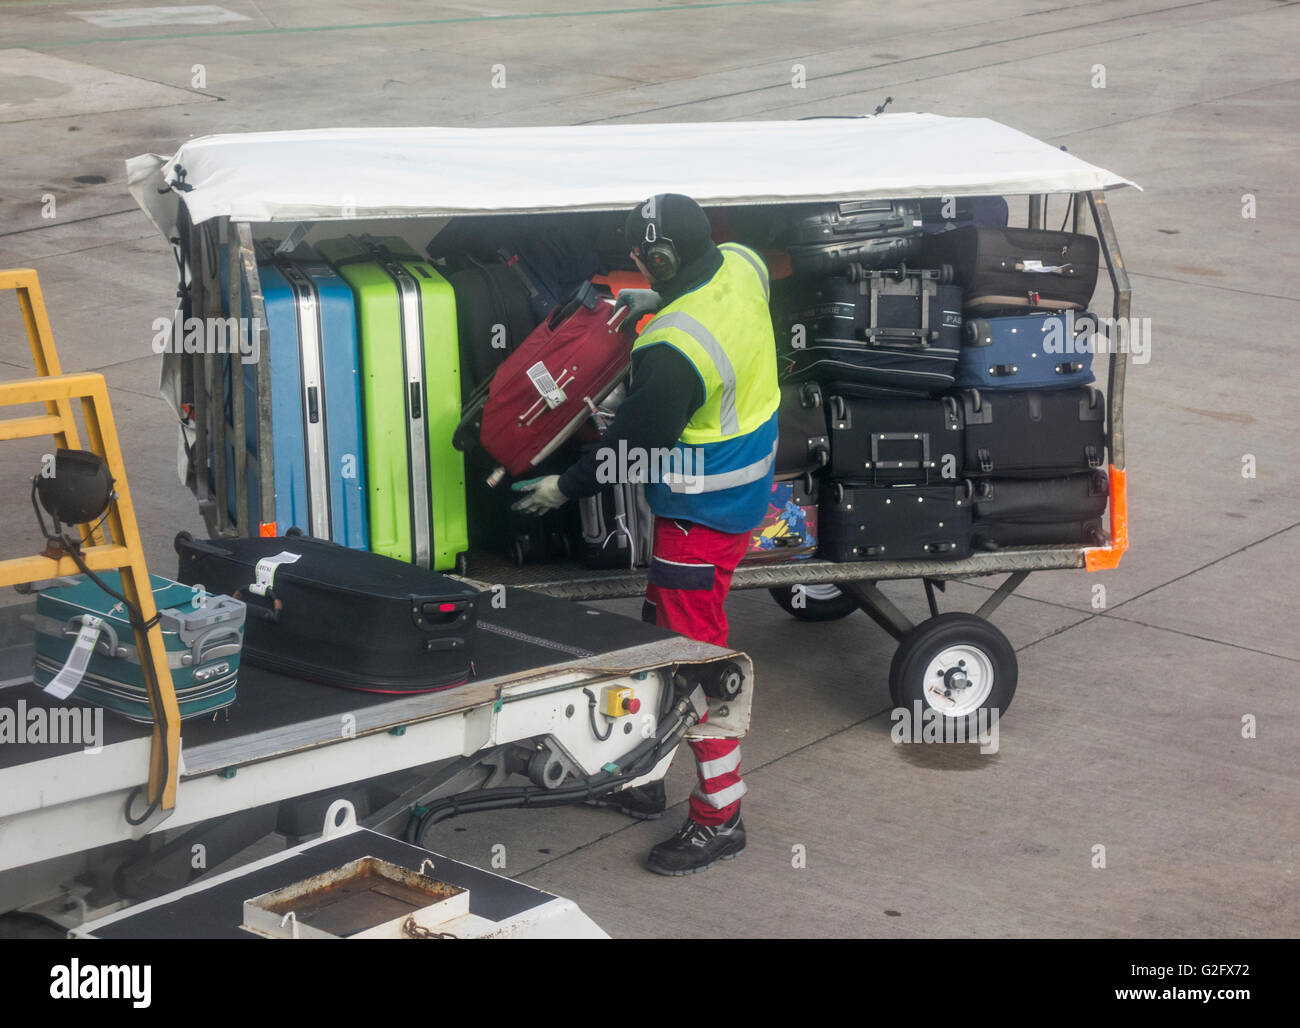 Baggage handler at Manchester airport. UK - Stock Image